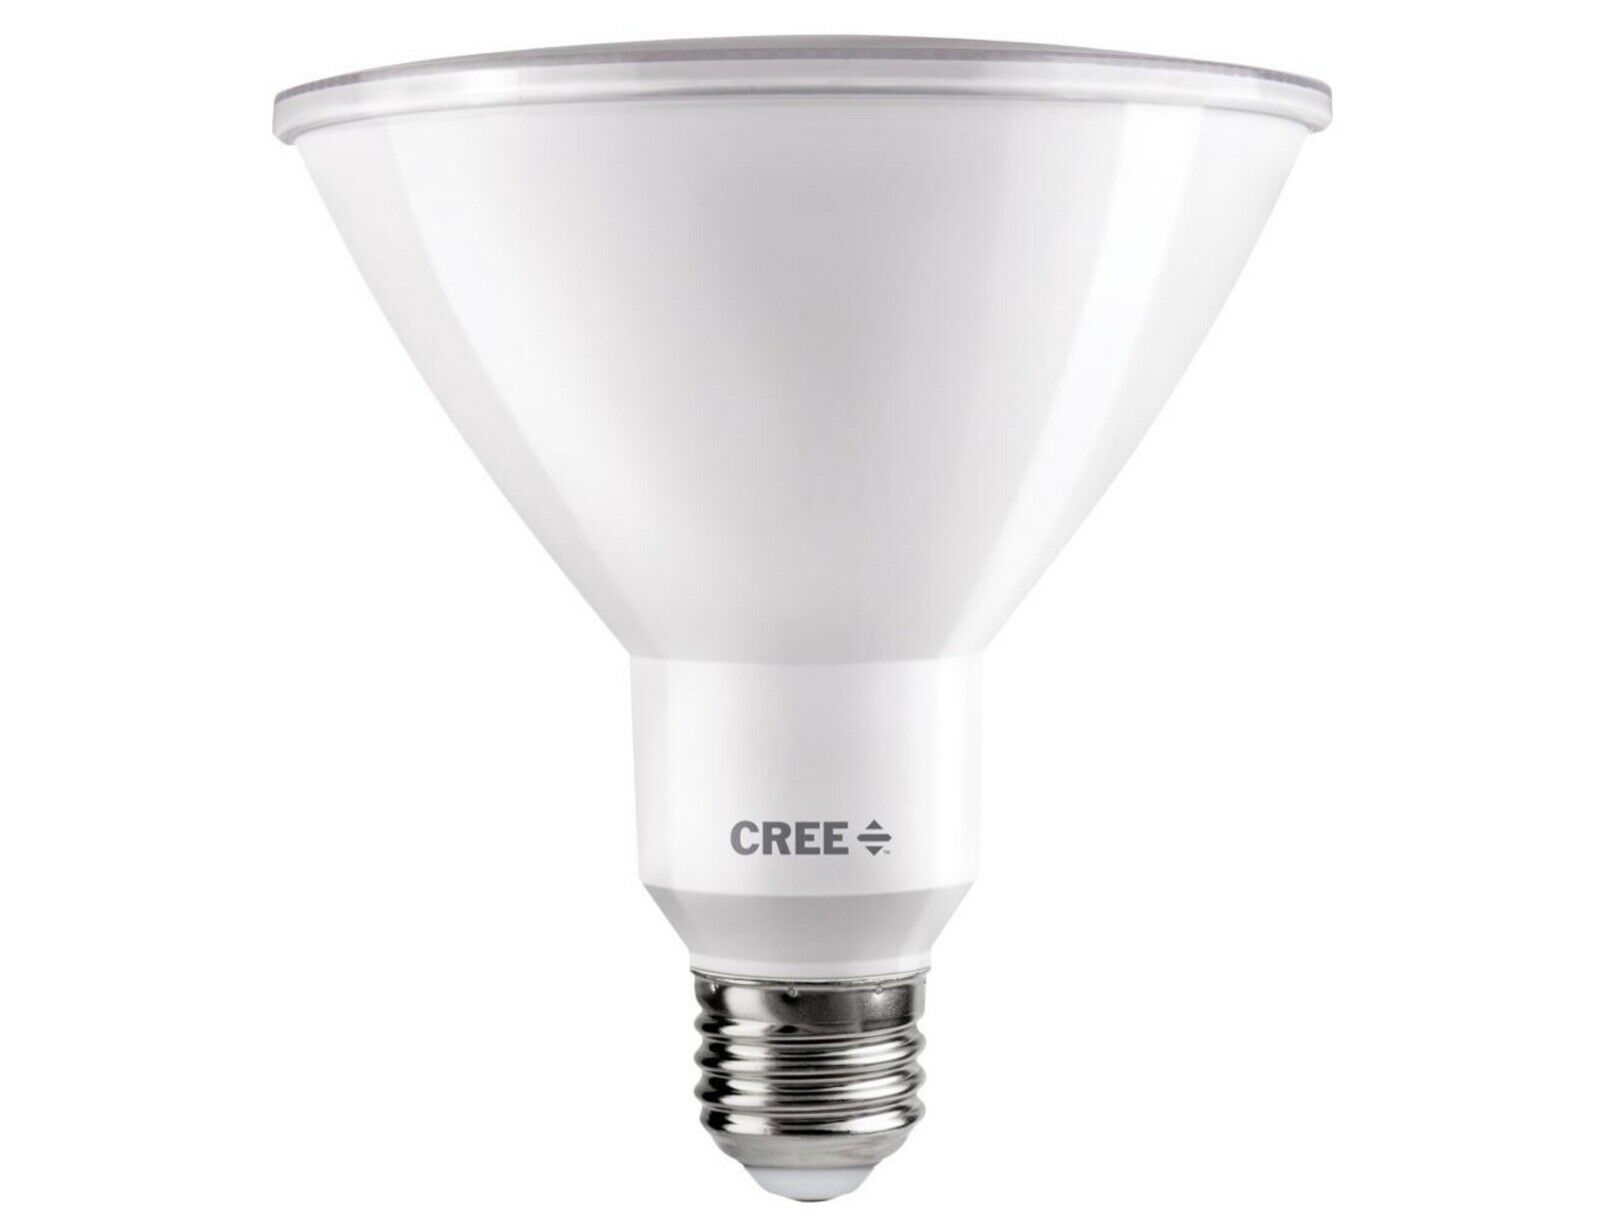 Primary image for Cree 120W Bright White (3000K) PAR38 Dimmable 40 Degree Spot Light Bulb